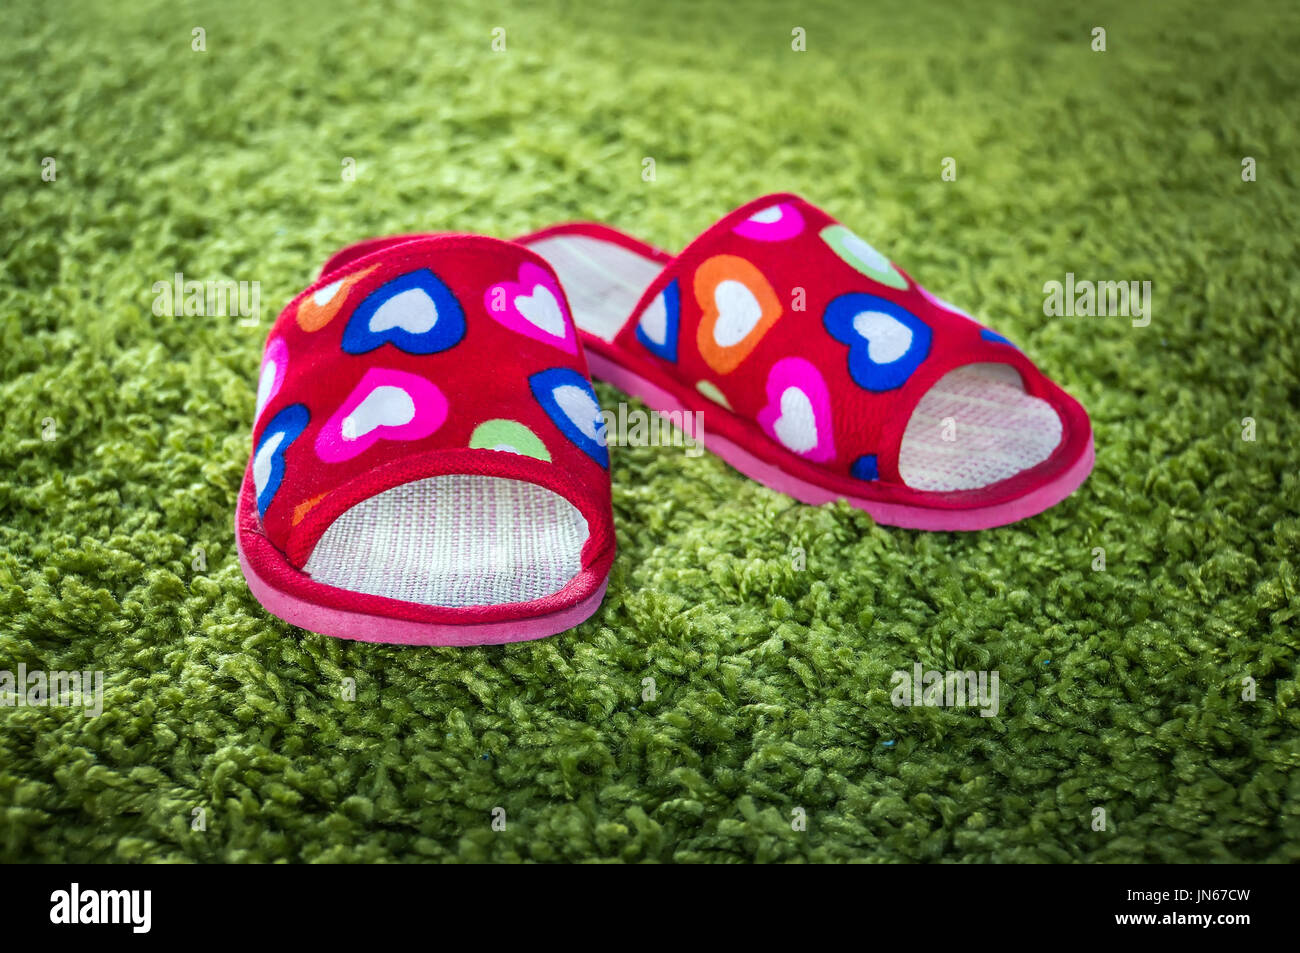 pair of women's Slippers under a warm room light from the window. Pink slippers on green doormat background. The comfort of home. - Stock Image